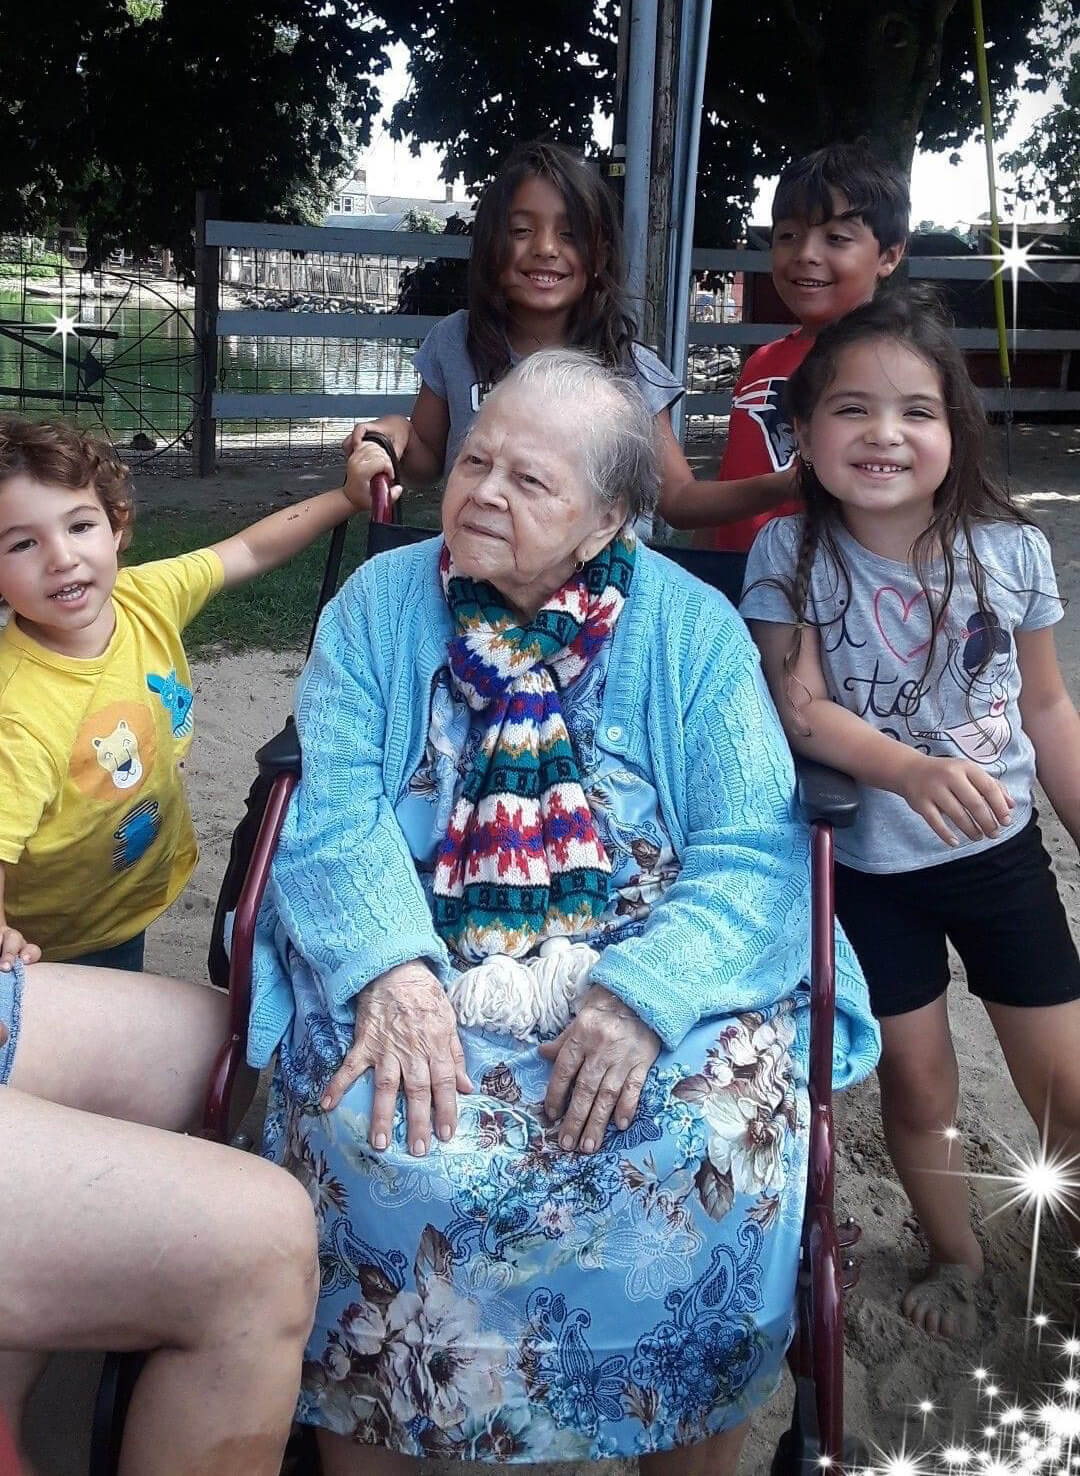 Celebrating Hispanic Heritage - abuela seated in blue surrounded by family